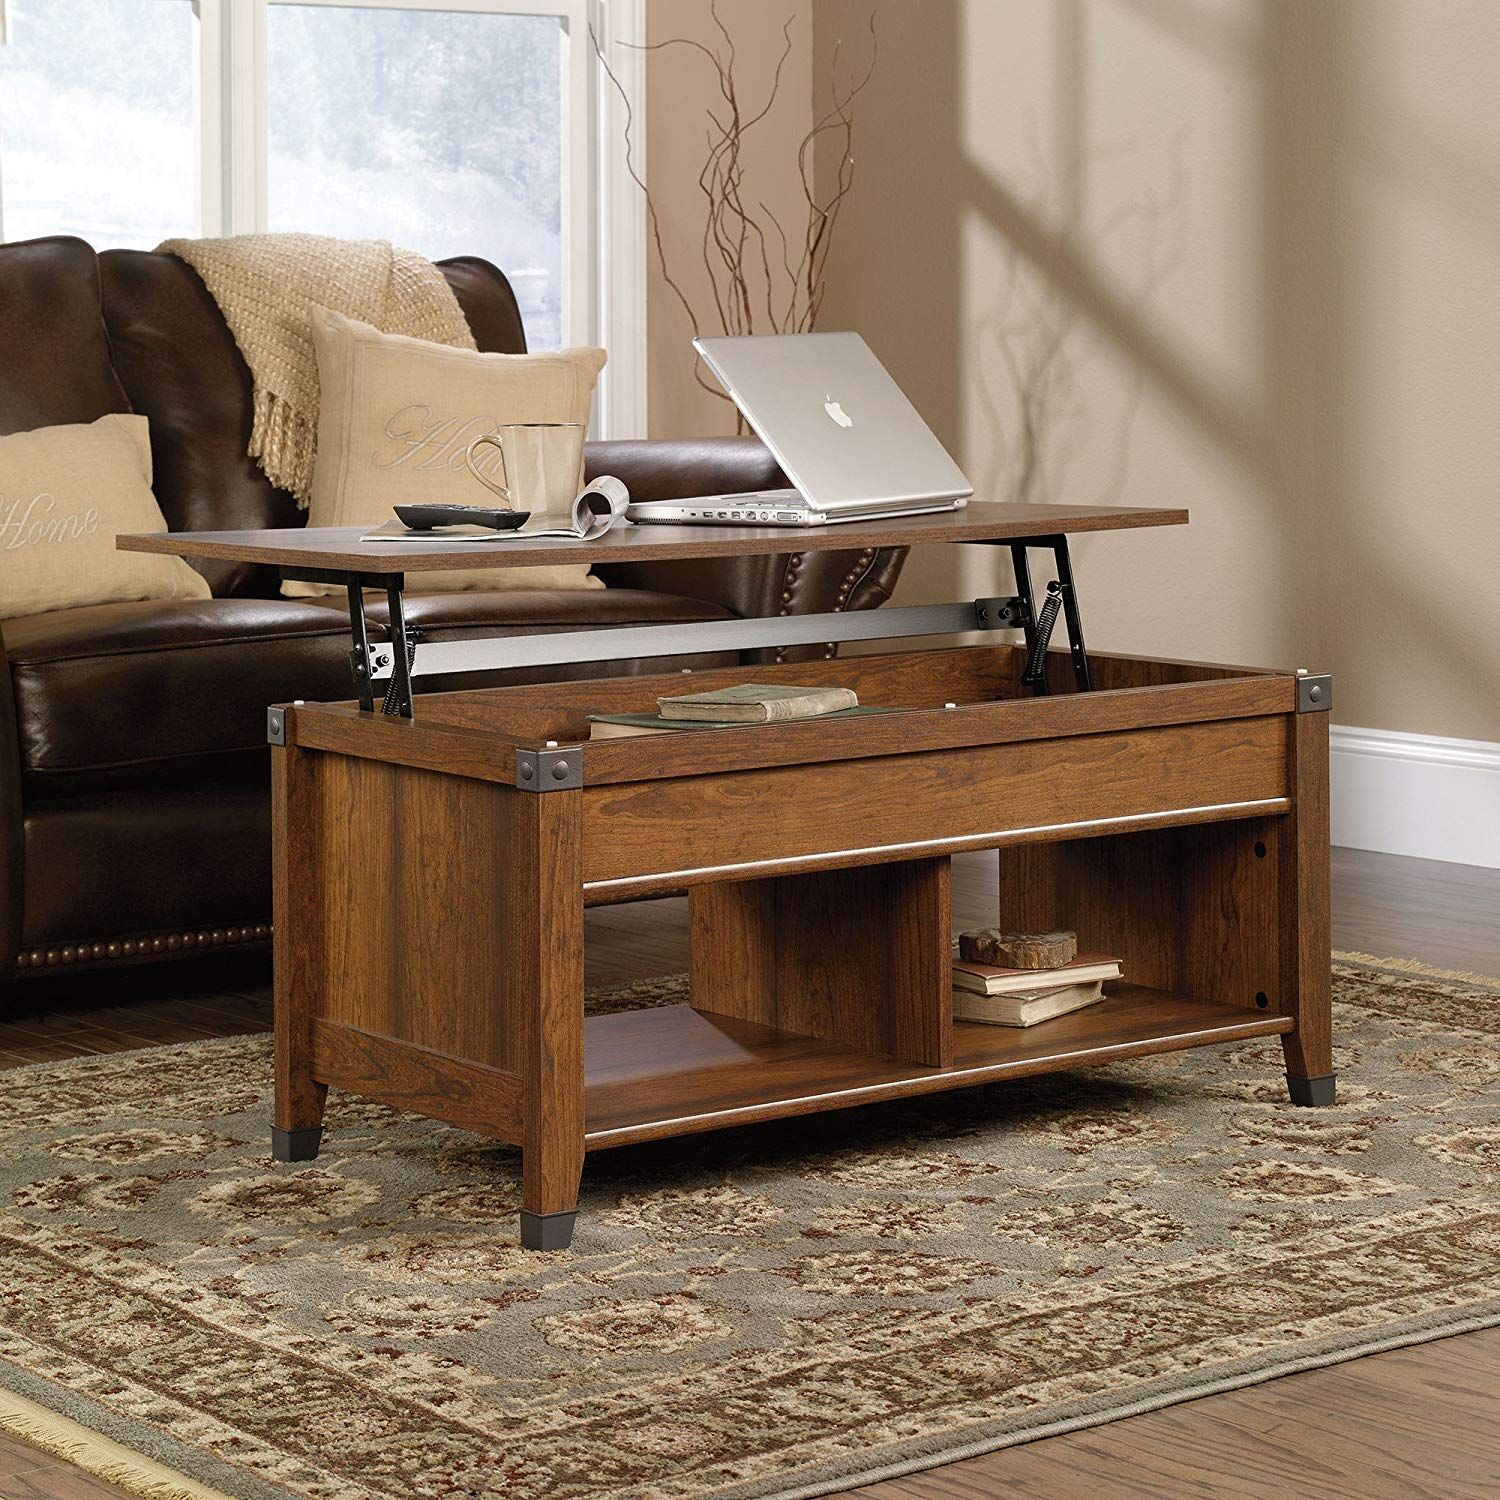 Amazon Com Carson Forge Lift Top Coffee Table In Cherry Stylish